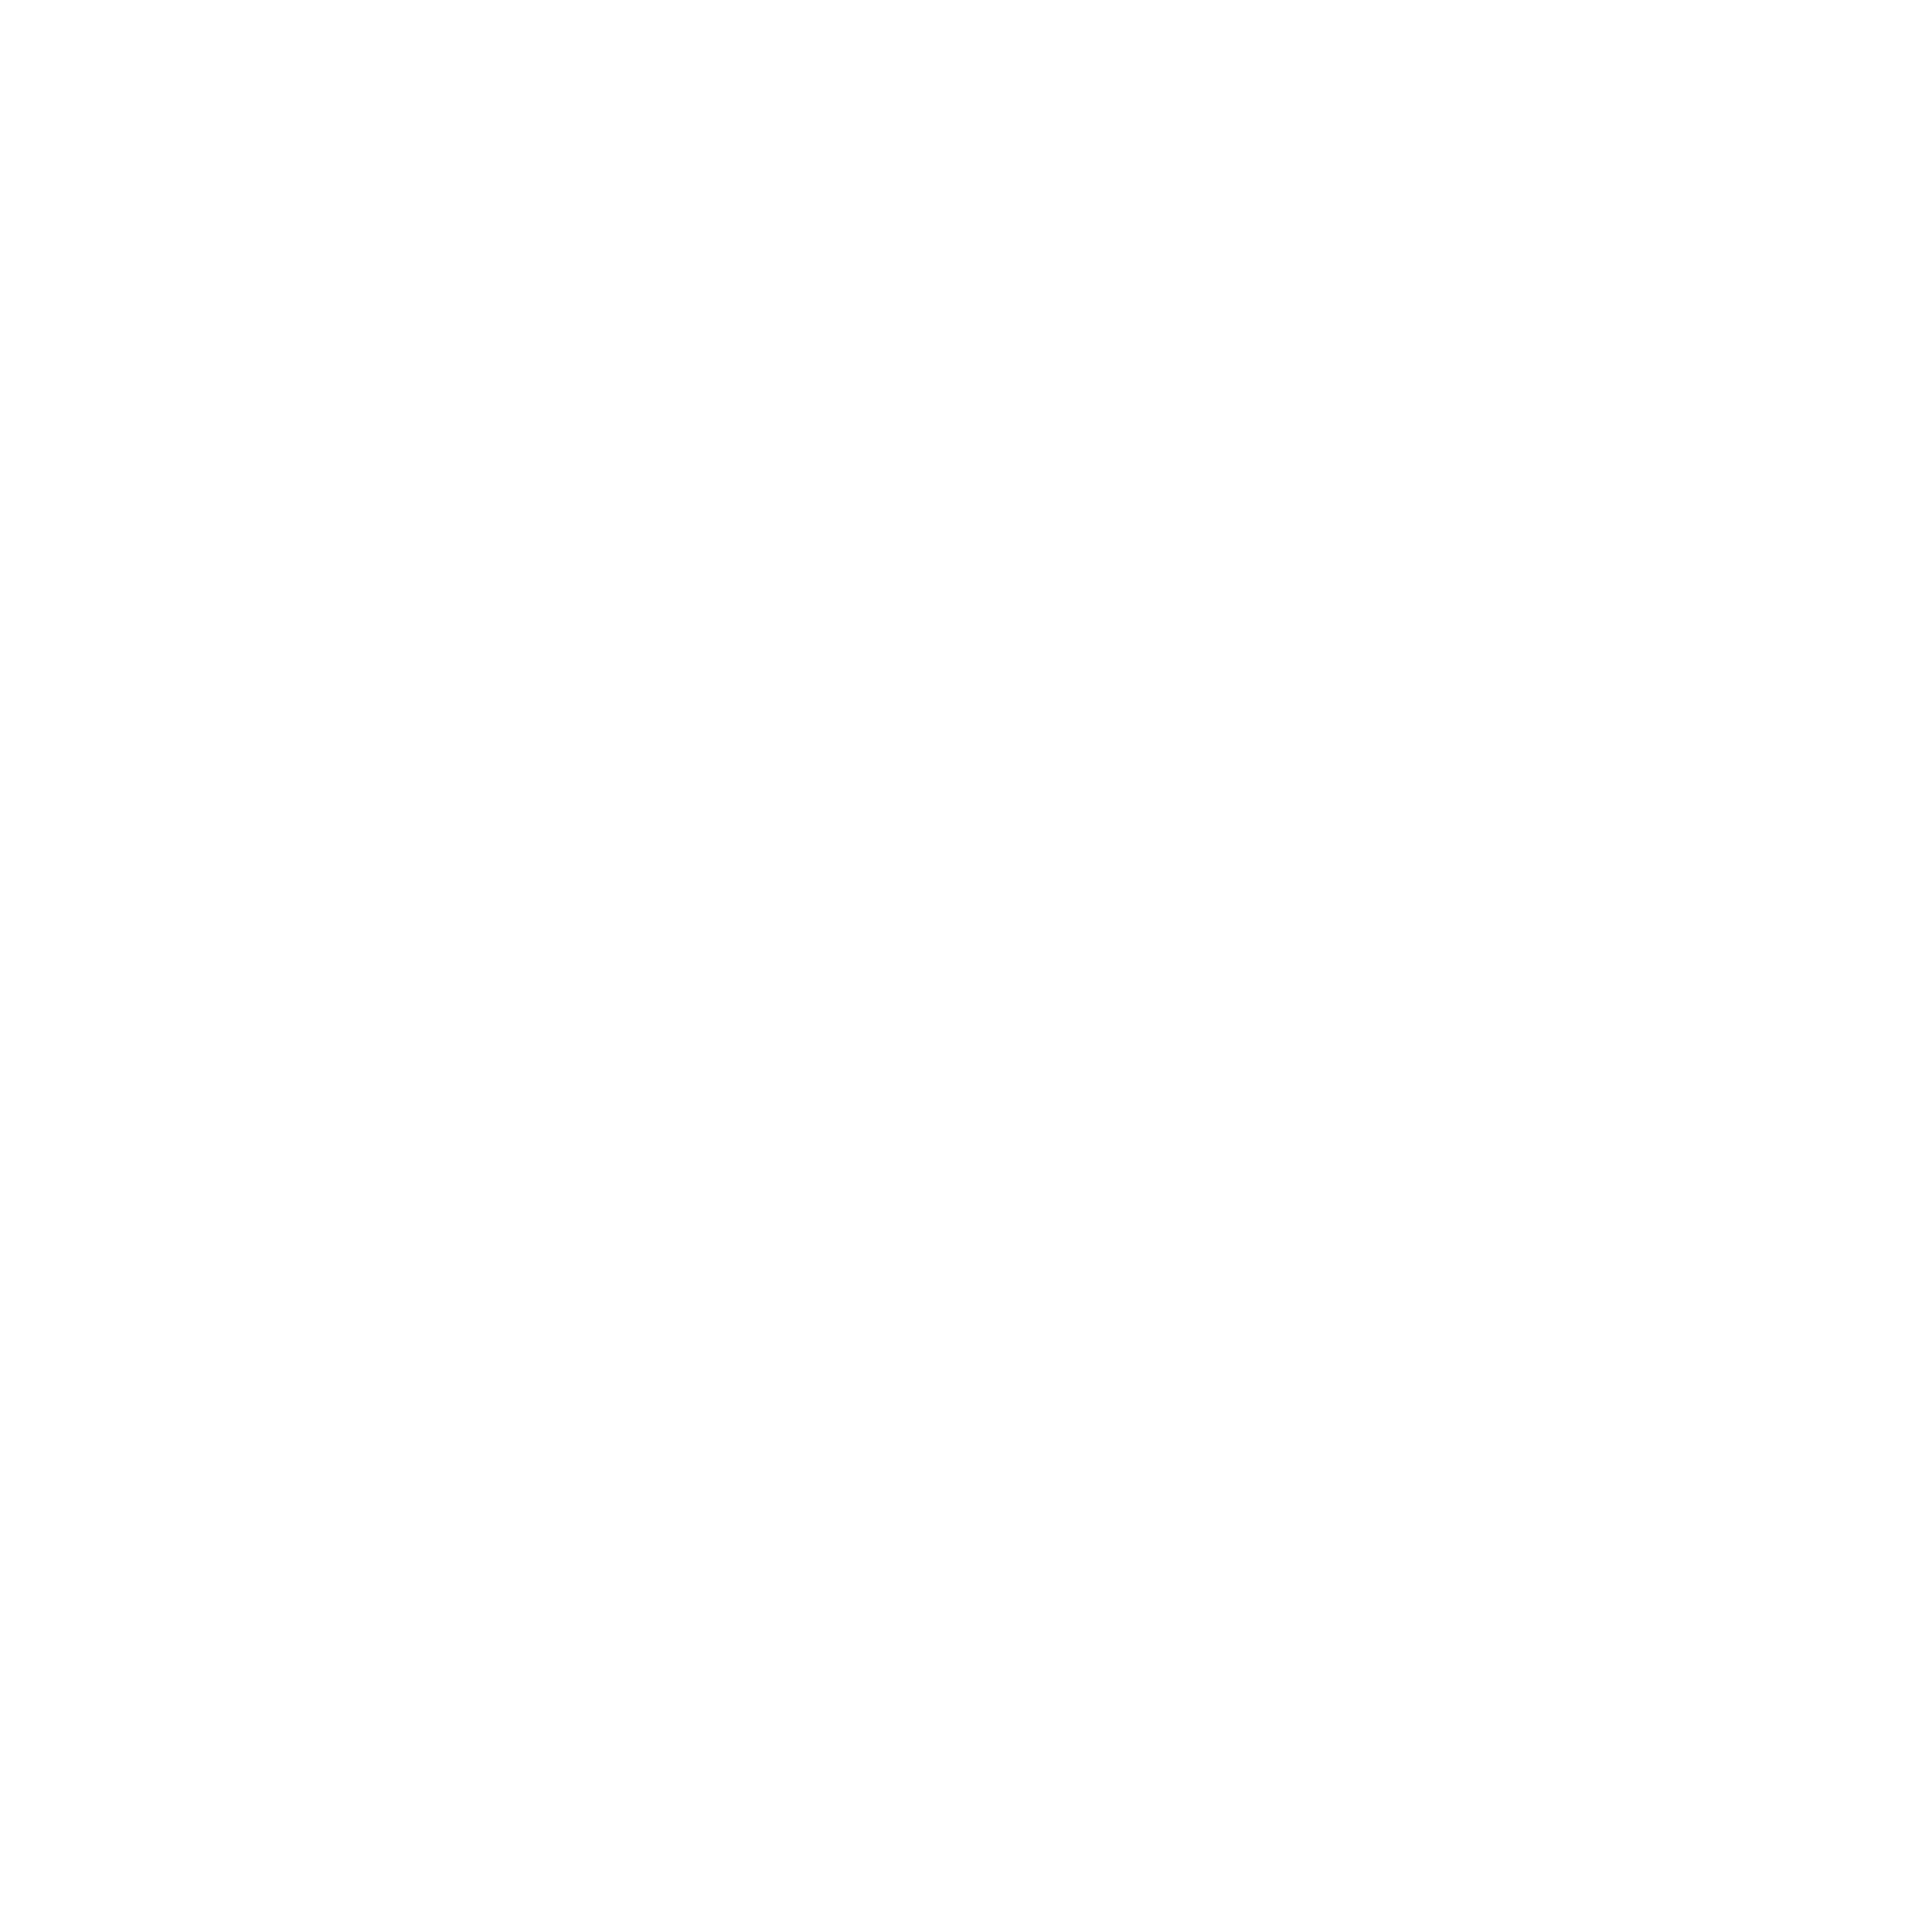 Monica Browning Photography